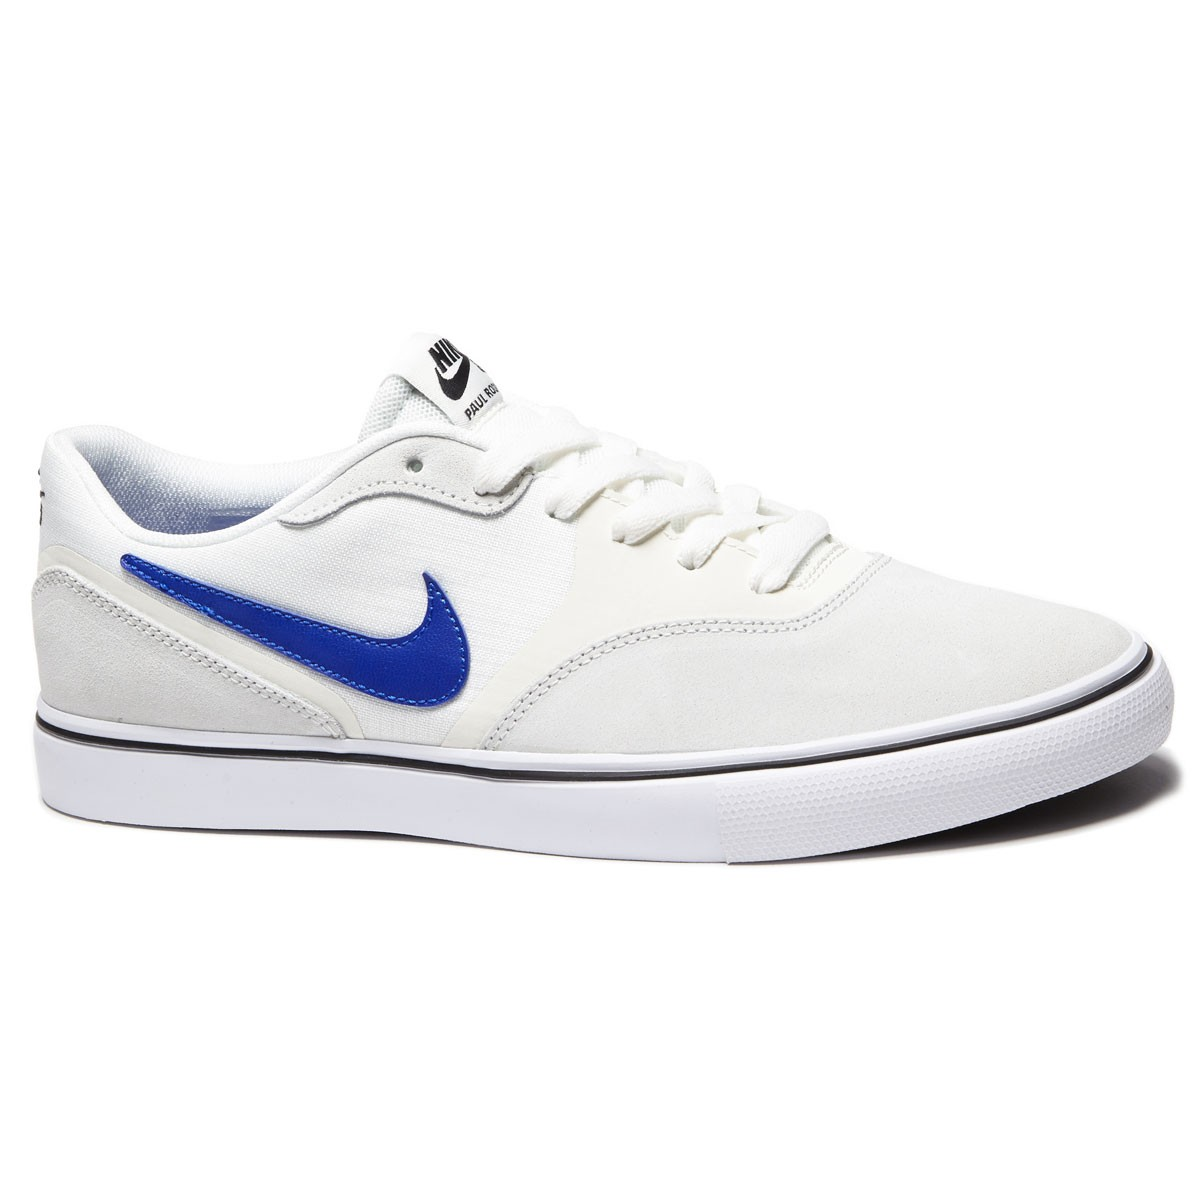 Nike Paul Rodriguez 9 VR Shoes